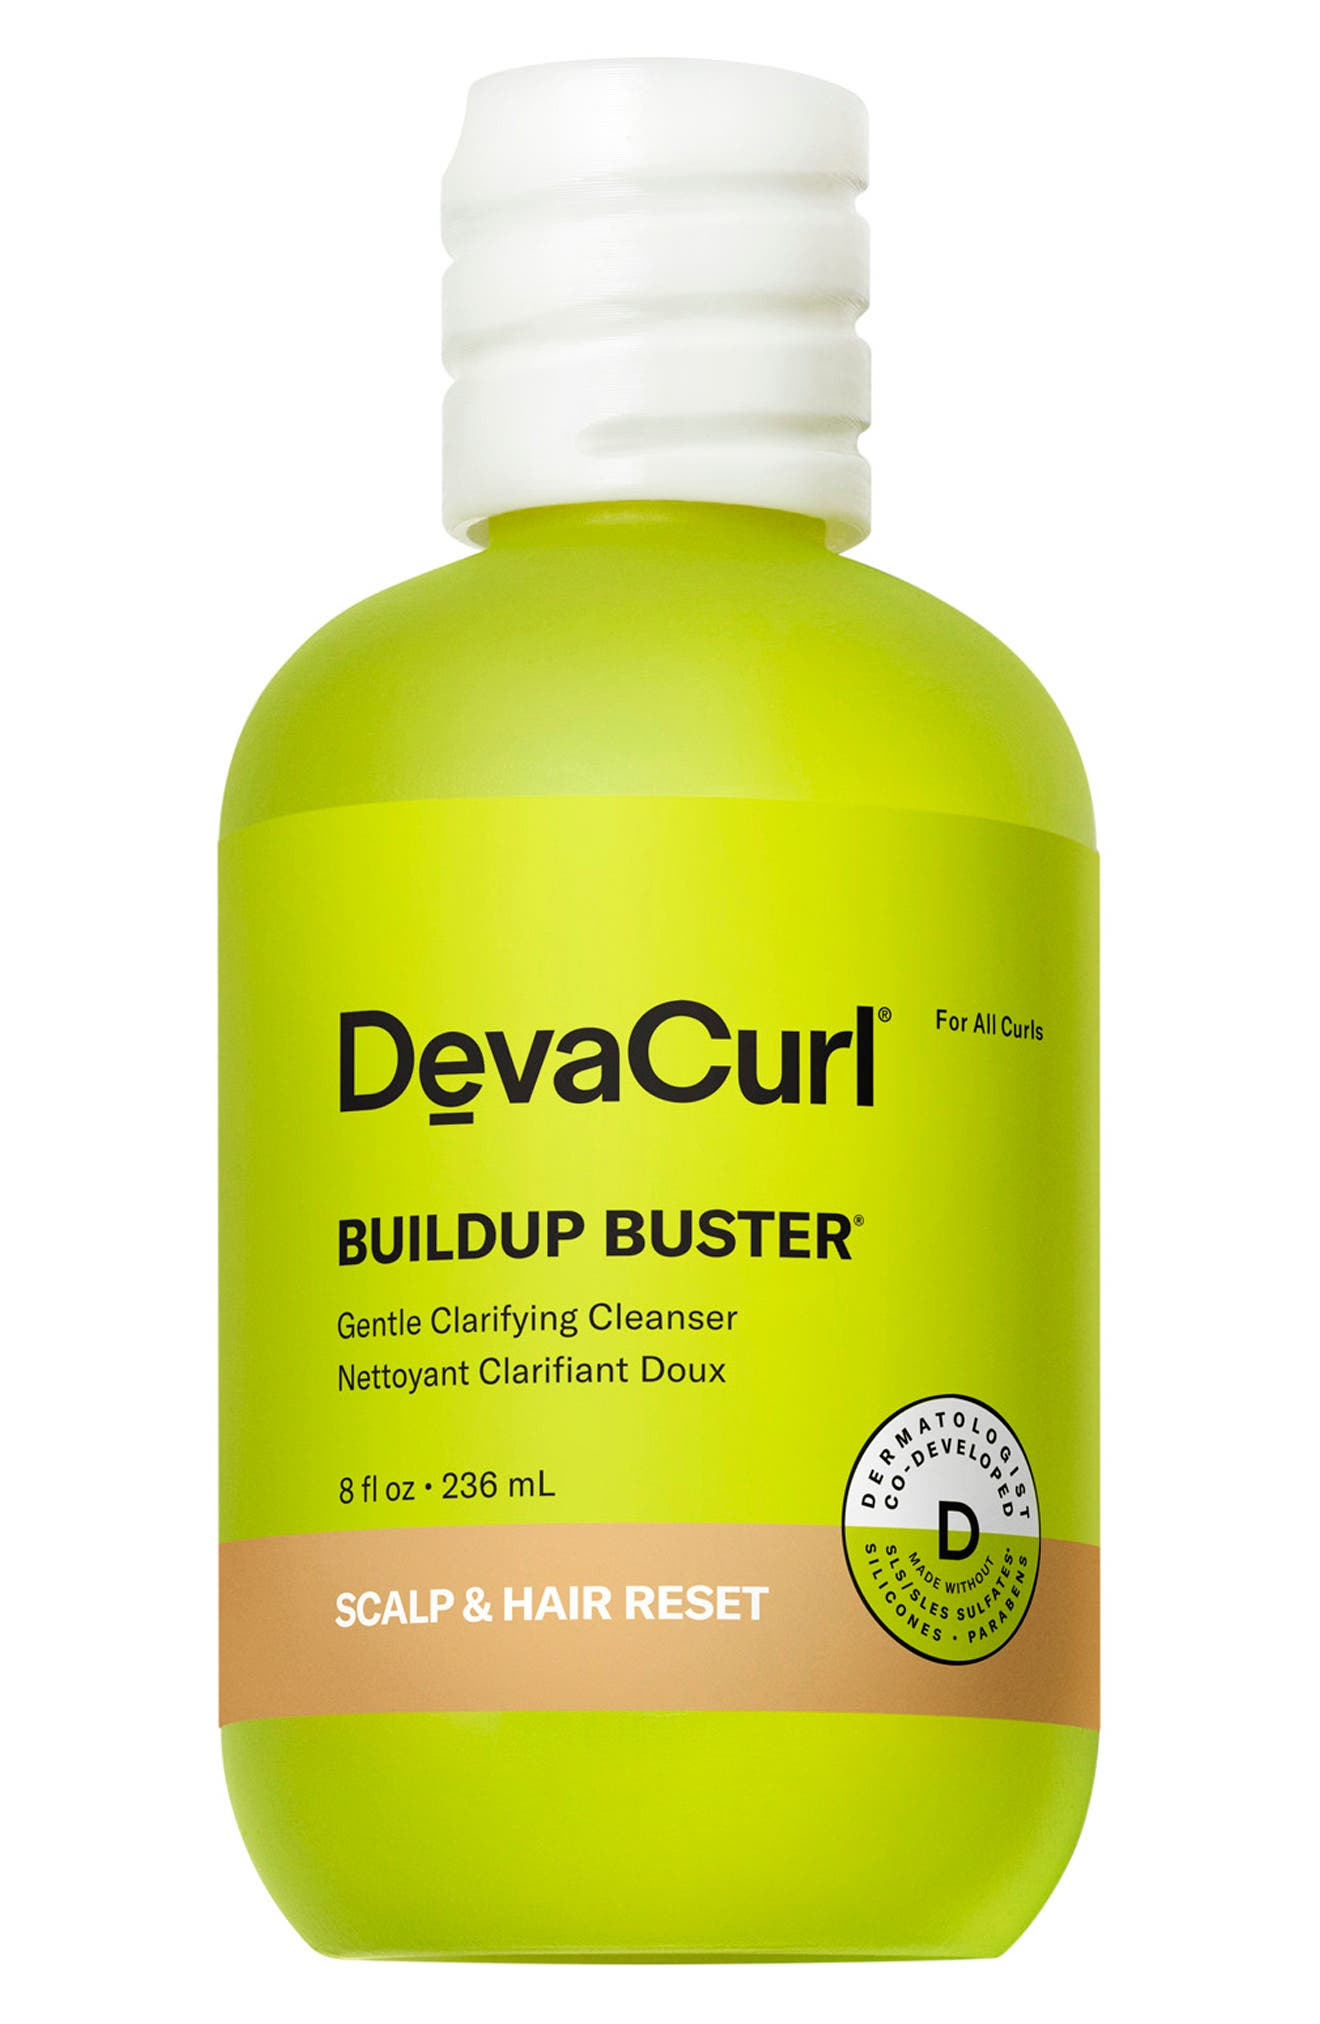 Buildup Buster Gentle Clarifying Cleanser